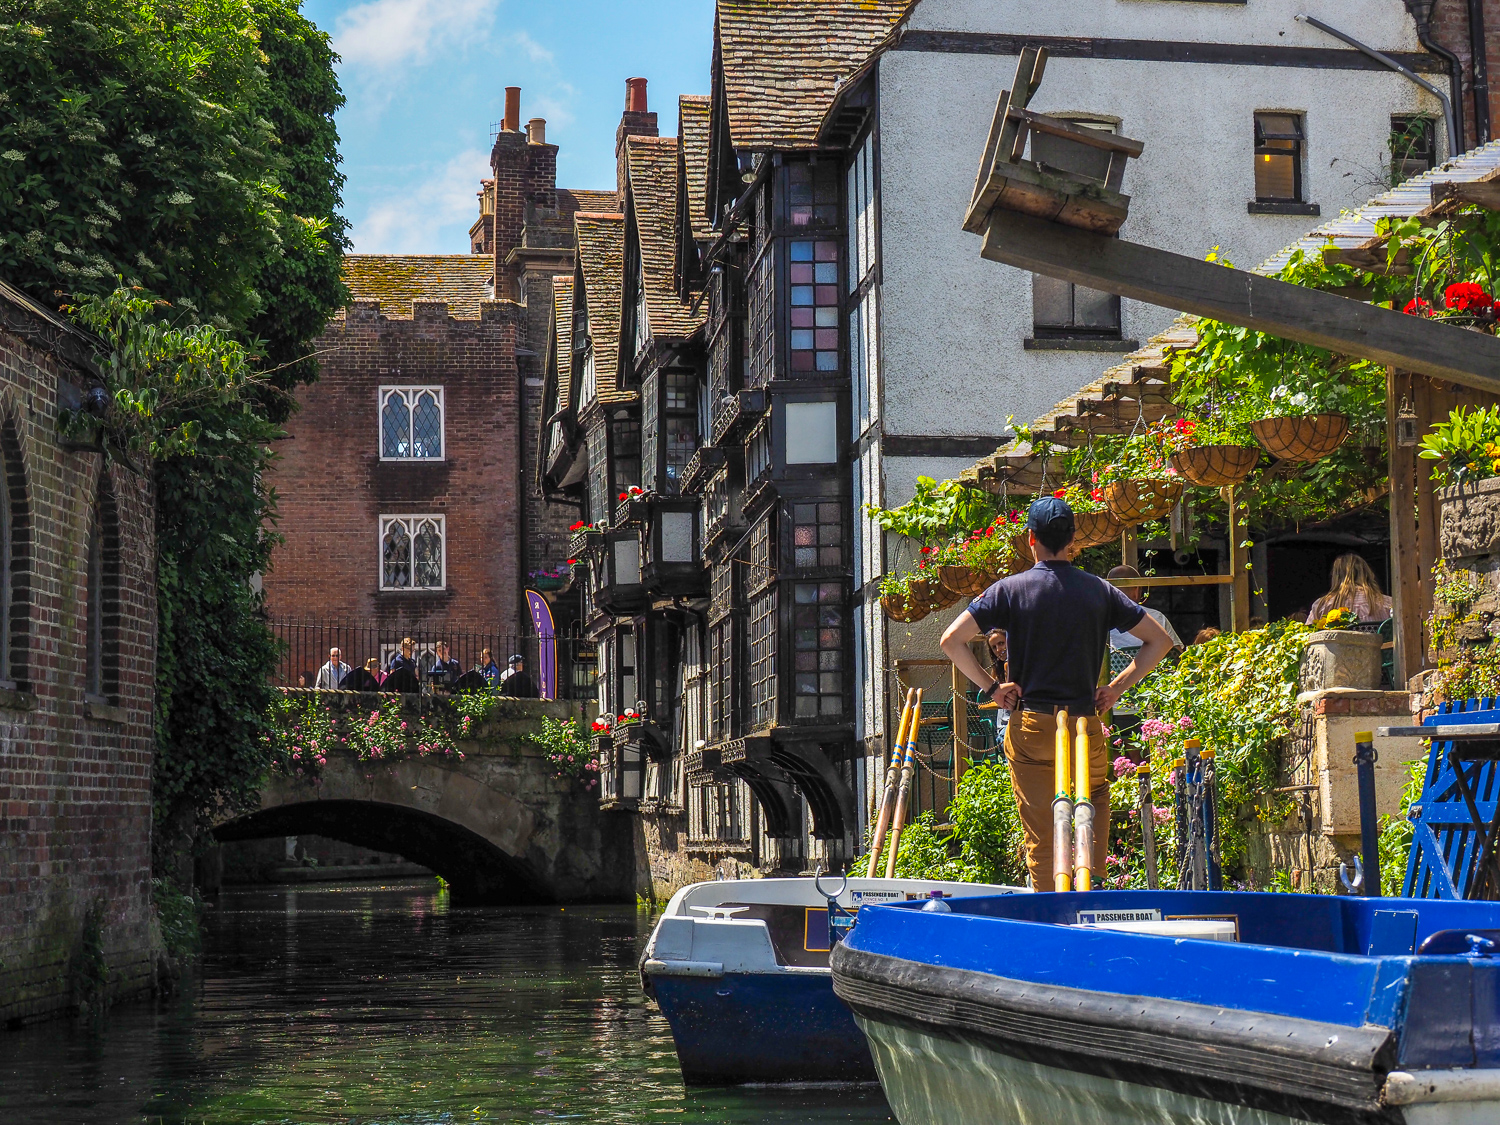 Summer days. Canterbury, Kent, UK. In the upper left is 'the ducking chair'.  This is a chair suspended on a frame hanging over the River Stour. It was used in the middle ages as a form of retribution for three types of situations. Firstly it was used as a punishment for nagging wives. In those enlightened times, a man could pay for his nagging wife to be dipped into the river on the ducking stool and of course suffer a degree of public humiliation at the same time. Secondly, it was used as a punishment and public embarrassment for cheating businessmen, who would be ducked into the water in front of a baying crowd and who would inevitably be forced to leave the city afterwards, their reputation in tatters. Lastly it was most famously used as a litmus test for witches and the way it worked was this: any woman accused of being a witch would be placed in the chair, and the chair would be swung out over the river and then submerged deep in the river for 2-3 minutes. After that time, the poor woman would be brought back to the surface. If she survived this lengthy ducking then clearly she was a witch as she must have used her powers to survive the fatal dowsing. If so, she would be burned at the stake as a witch. If, however, the lady was dead after being submerged for 3 minutes, then clearly she was not a witch.